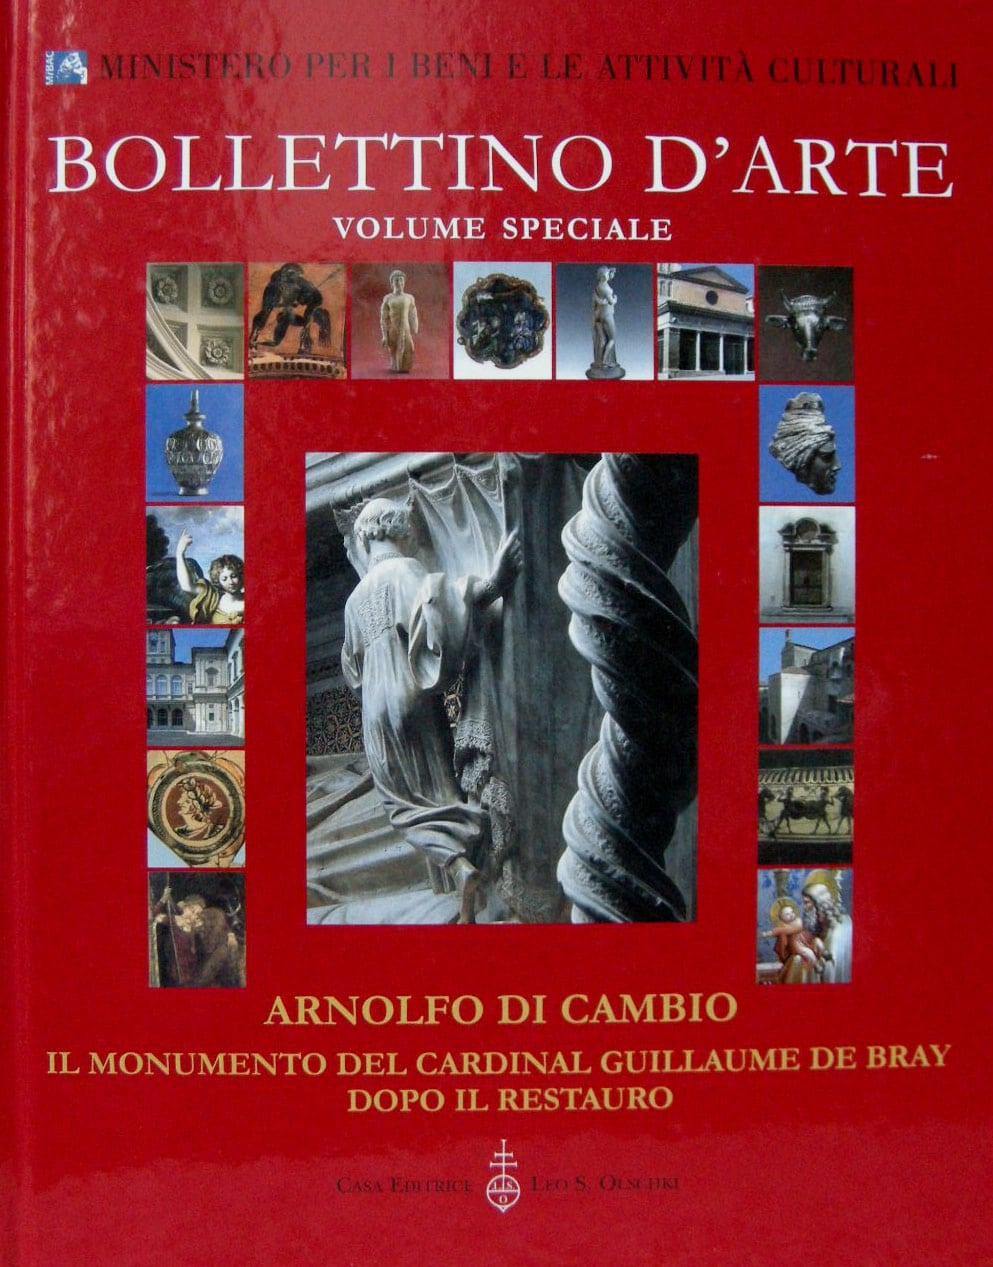 http://cbccoop.it/app/uploads/2017/06/COP-Bollettino-darte-Arnolfo-di-Cambio.jpg